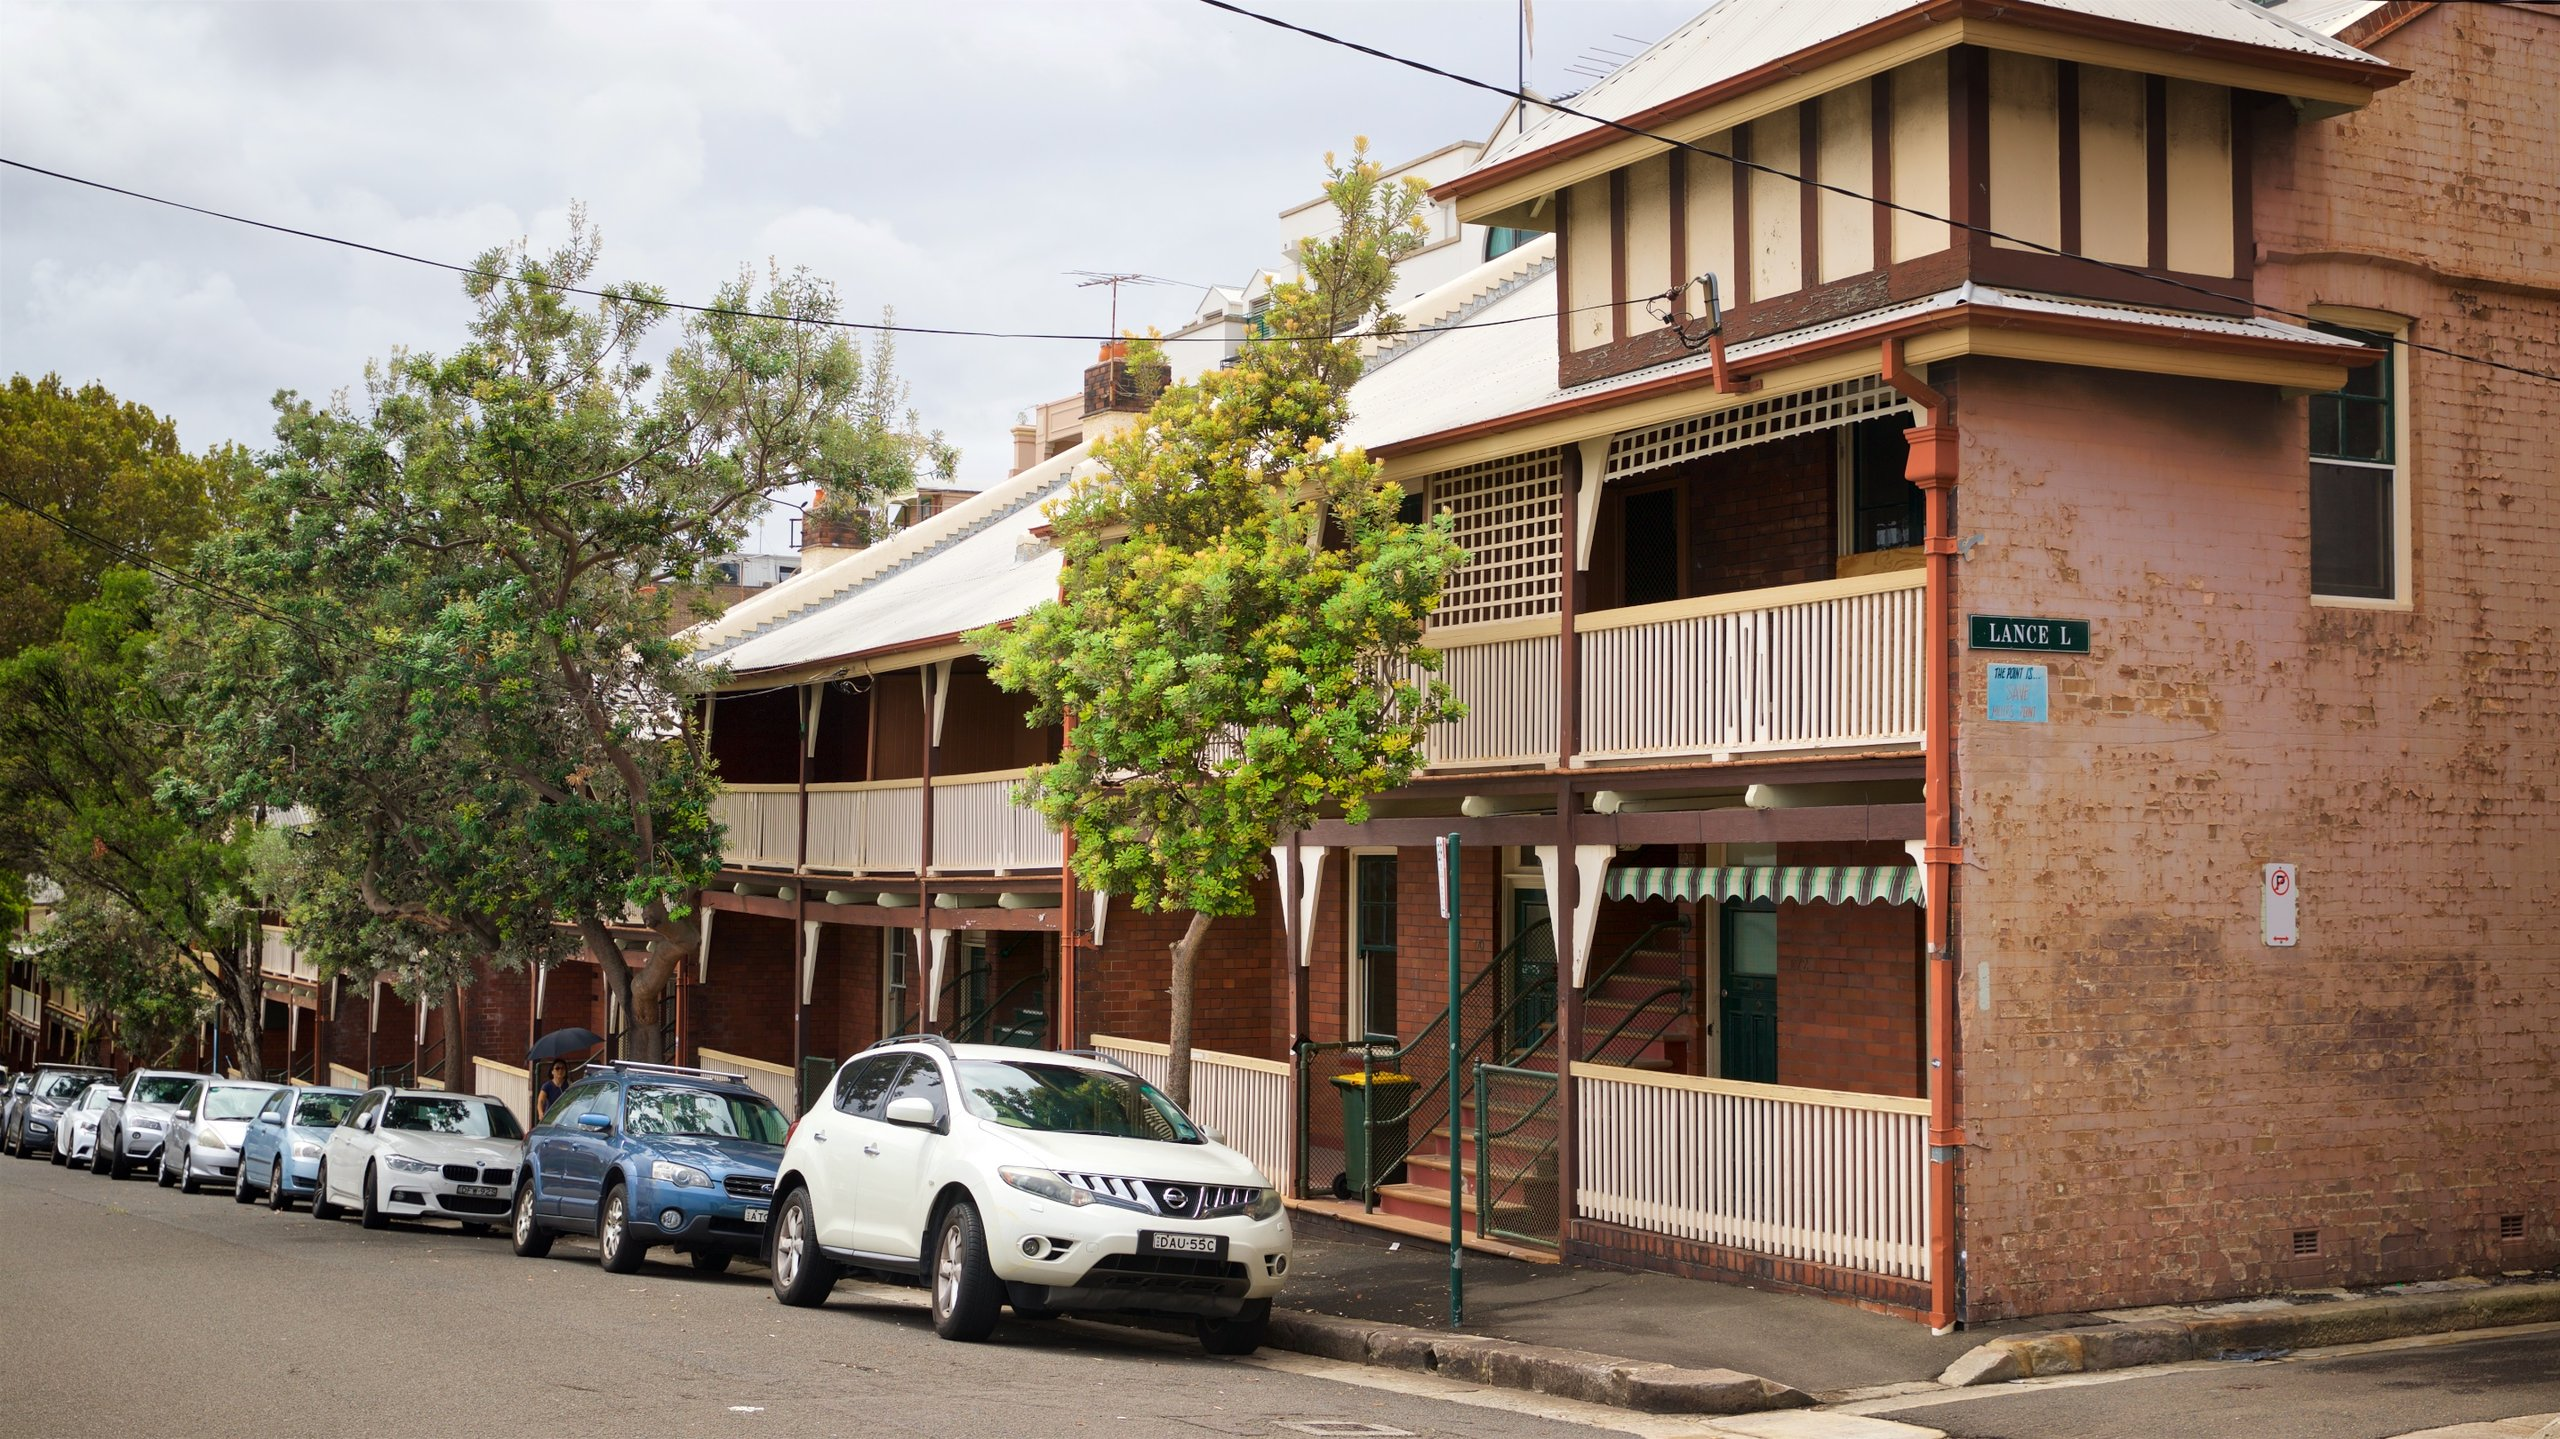 Millers Point, Sydney, New South Wales, Australia